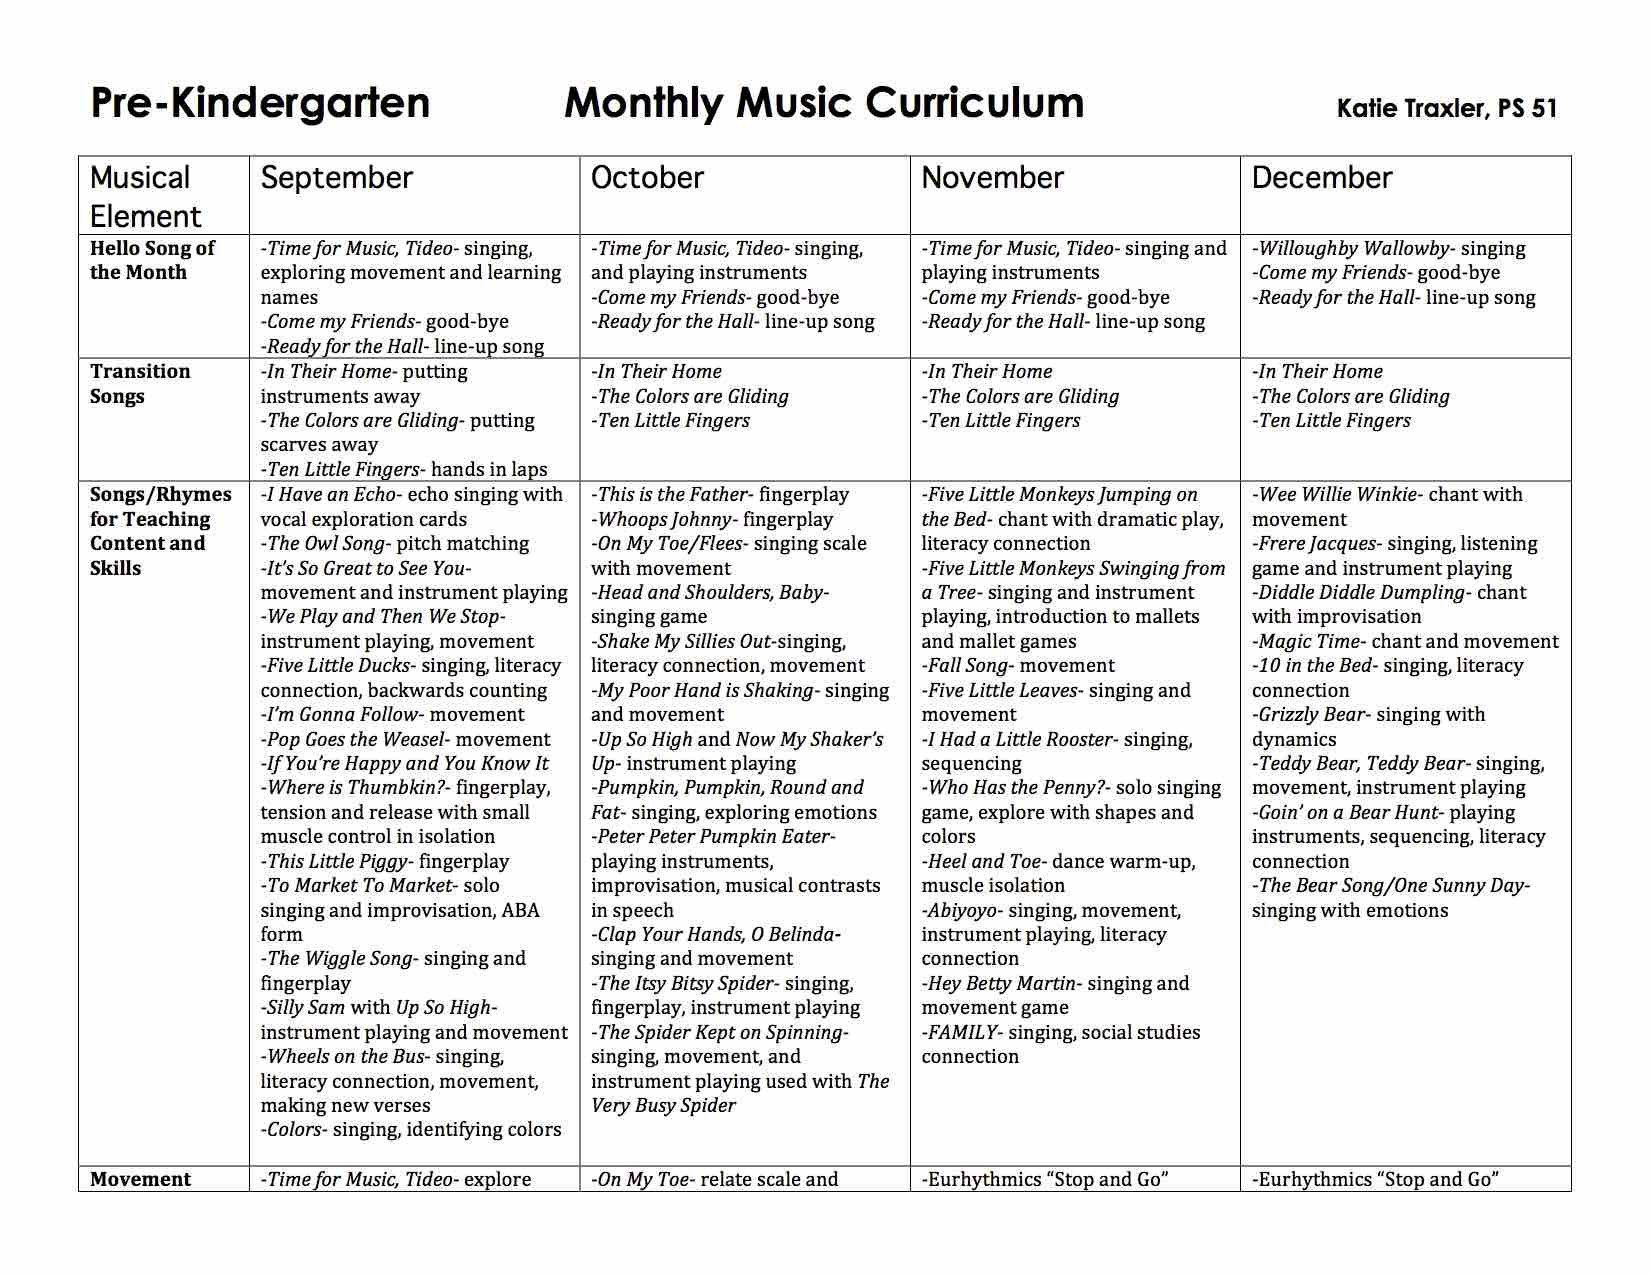 Music curriculum map template gallery template design ideas for Preschool curriculum map template